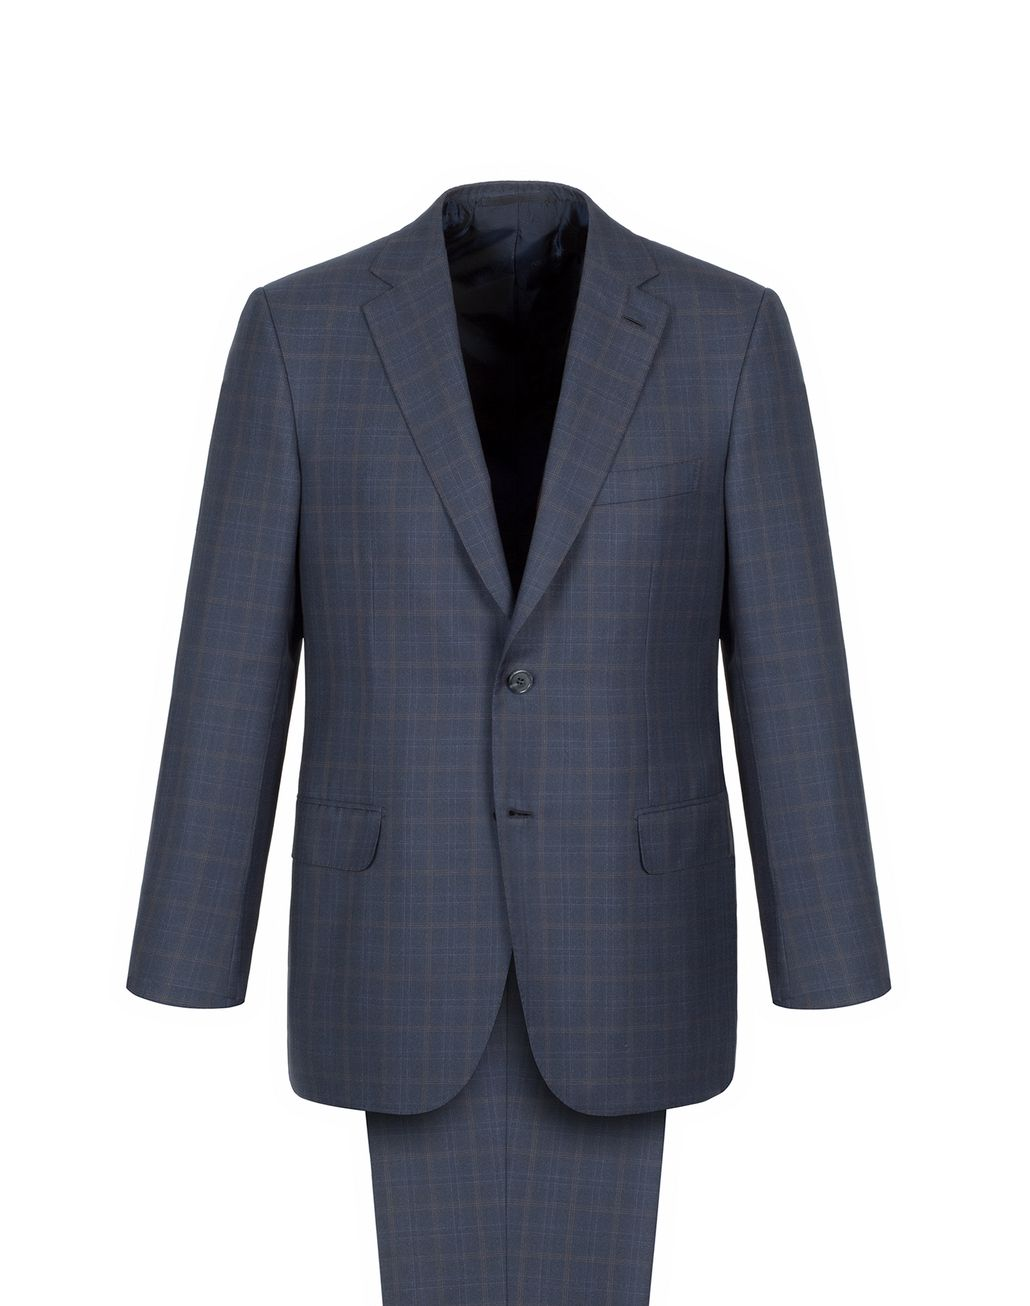 BRIONI Navy Blue Subtle Check Brunico Suit Suits & Jackets U f